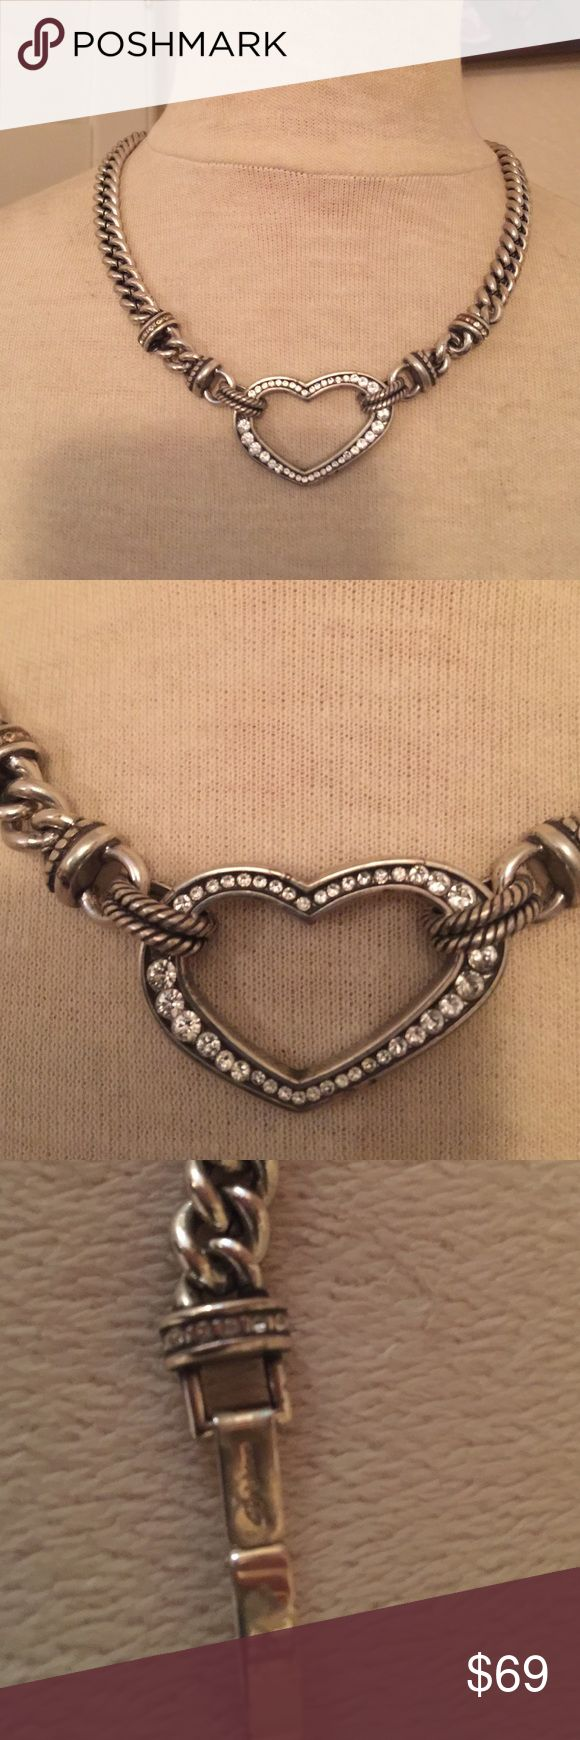 """Brighton collection silver crystal heart necklace Brighton collection silver/crystal heart necklace choker 18.5"""" from end to end NWOT Brighton Jewelry Necklaces"""